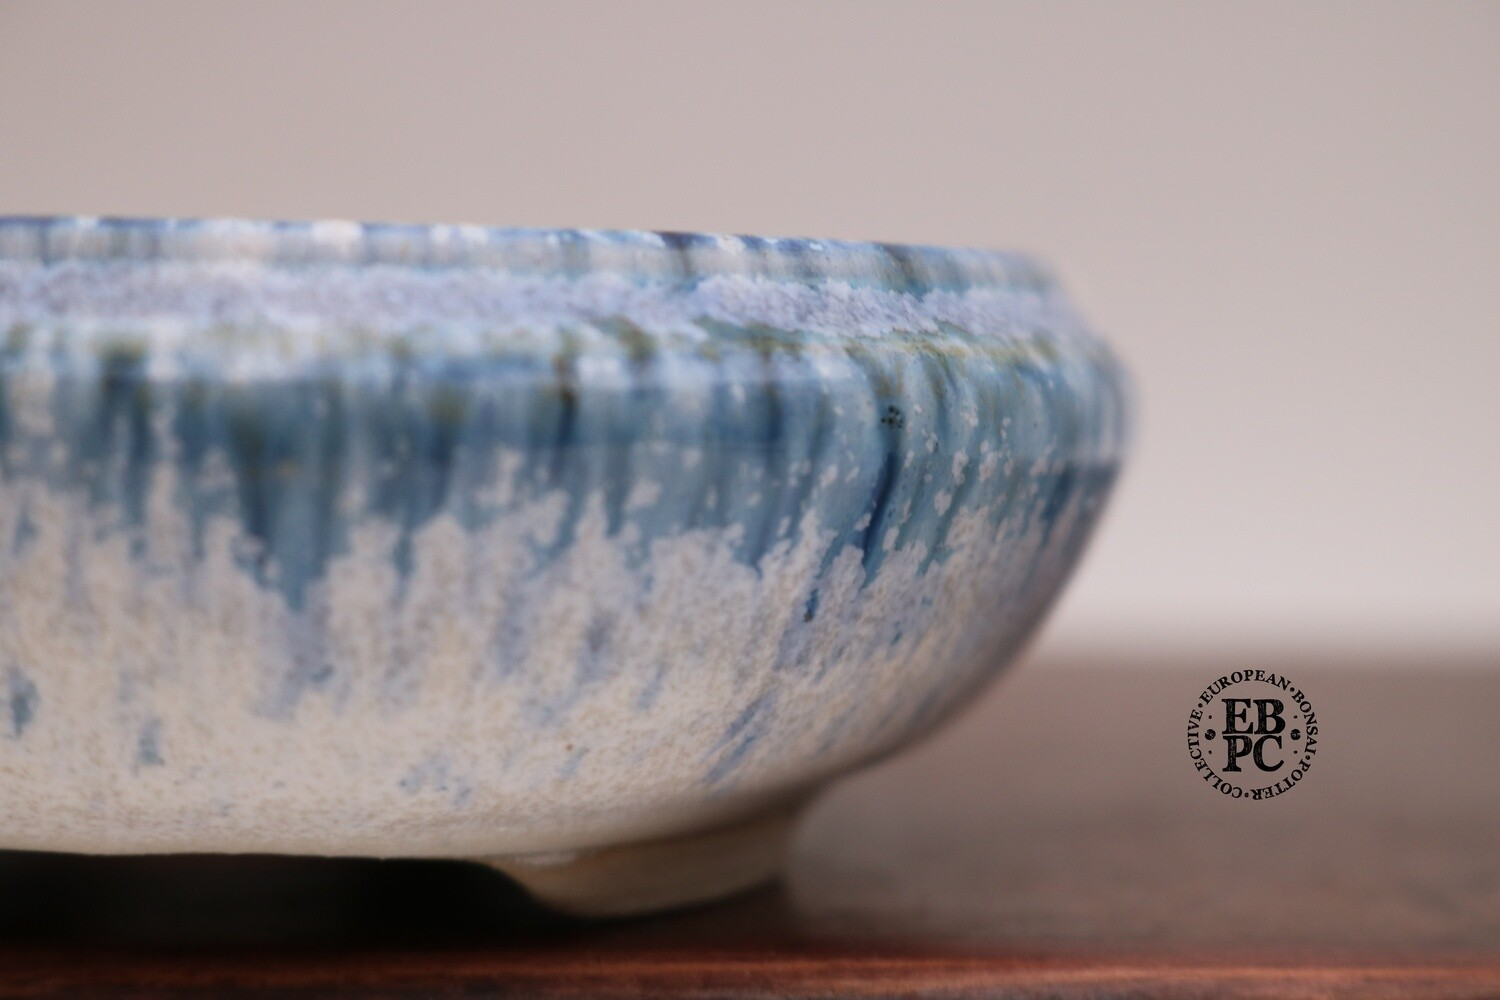 SOLD - PAS Pots - 11.2cm  Round; Shohin / Accent pot; Hand Thrown; Superb Glaze; Oribe-like blue crystals over White; Detailed foot ring; Patricia